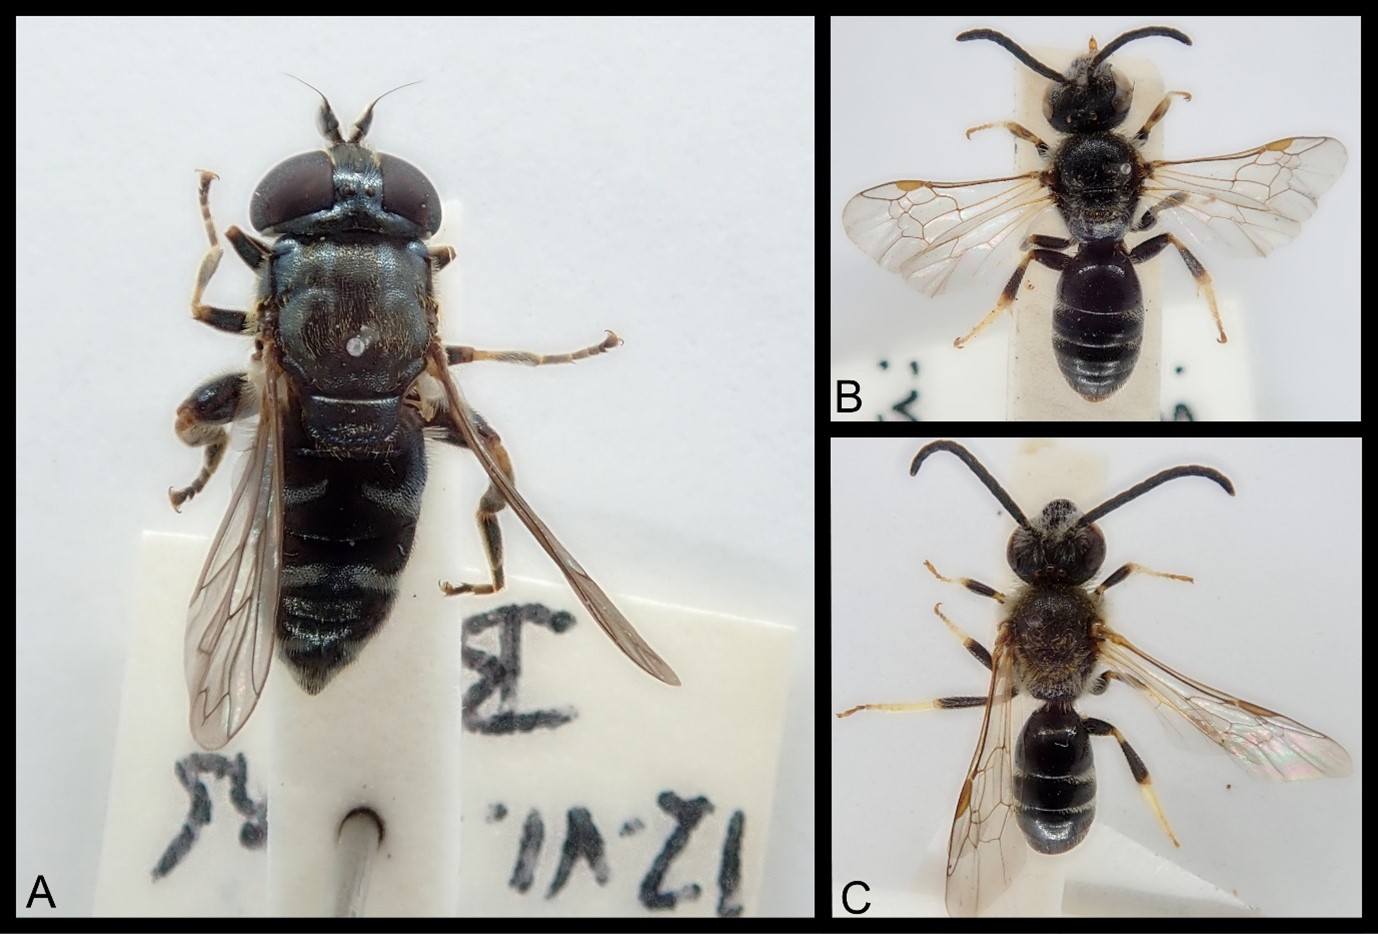 A composite image of three photos. On the left is a photo of a Lesser Bulb Fly taken from above. It has a dark body and thin, yellowish legs. On the top right and bottom right are photos of a Sweat Bee taken from above. It has a dark body in three pronounced sections, pale wings, yellowish legs and dark antennae.